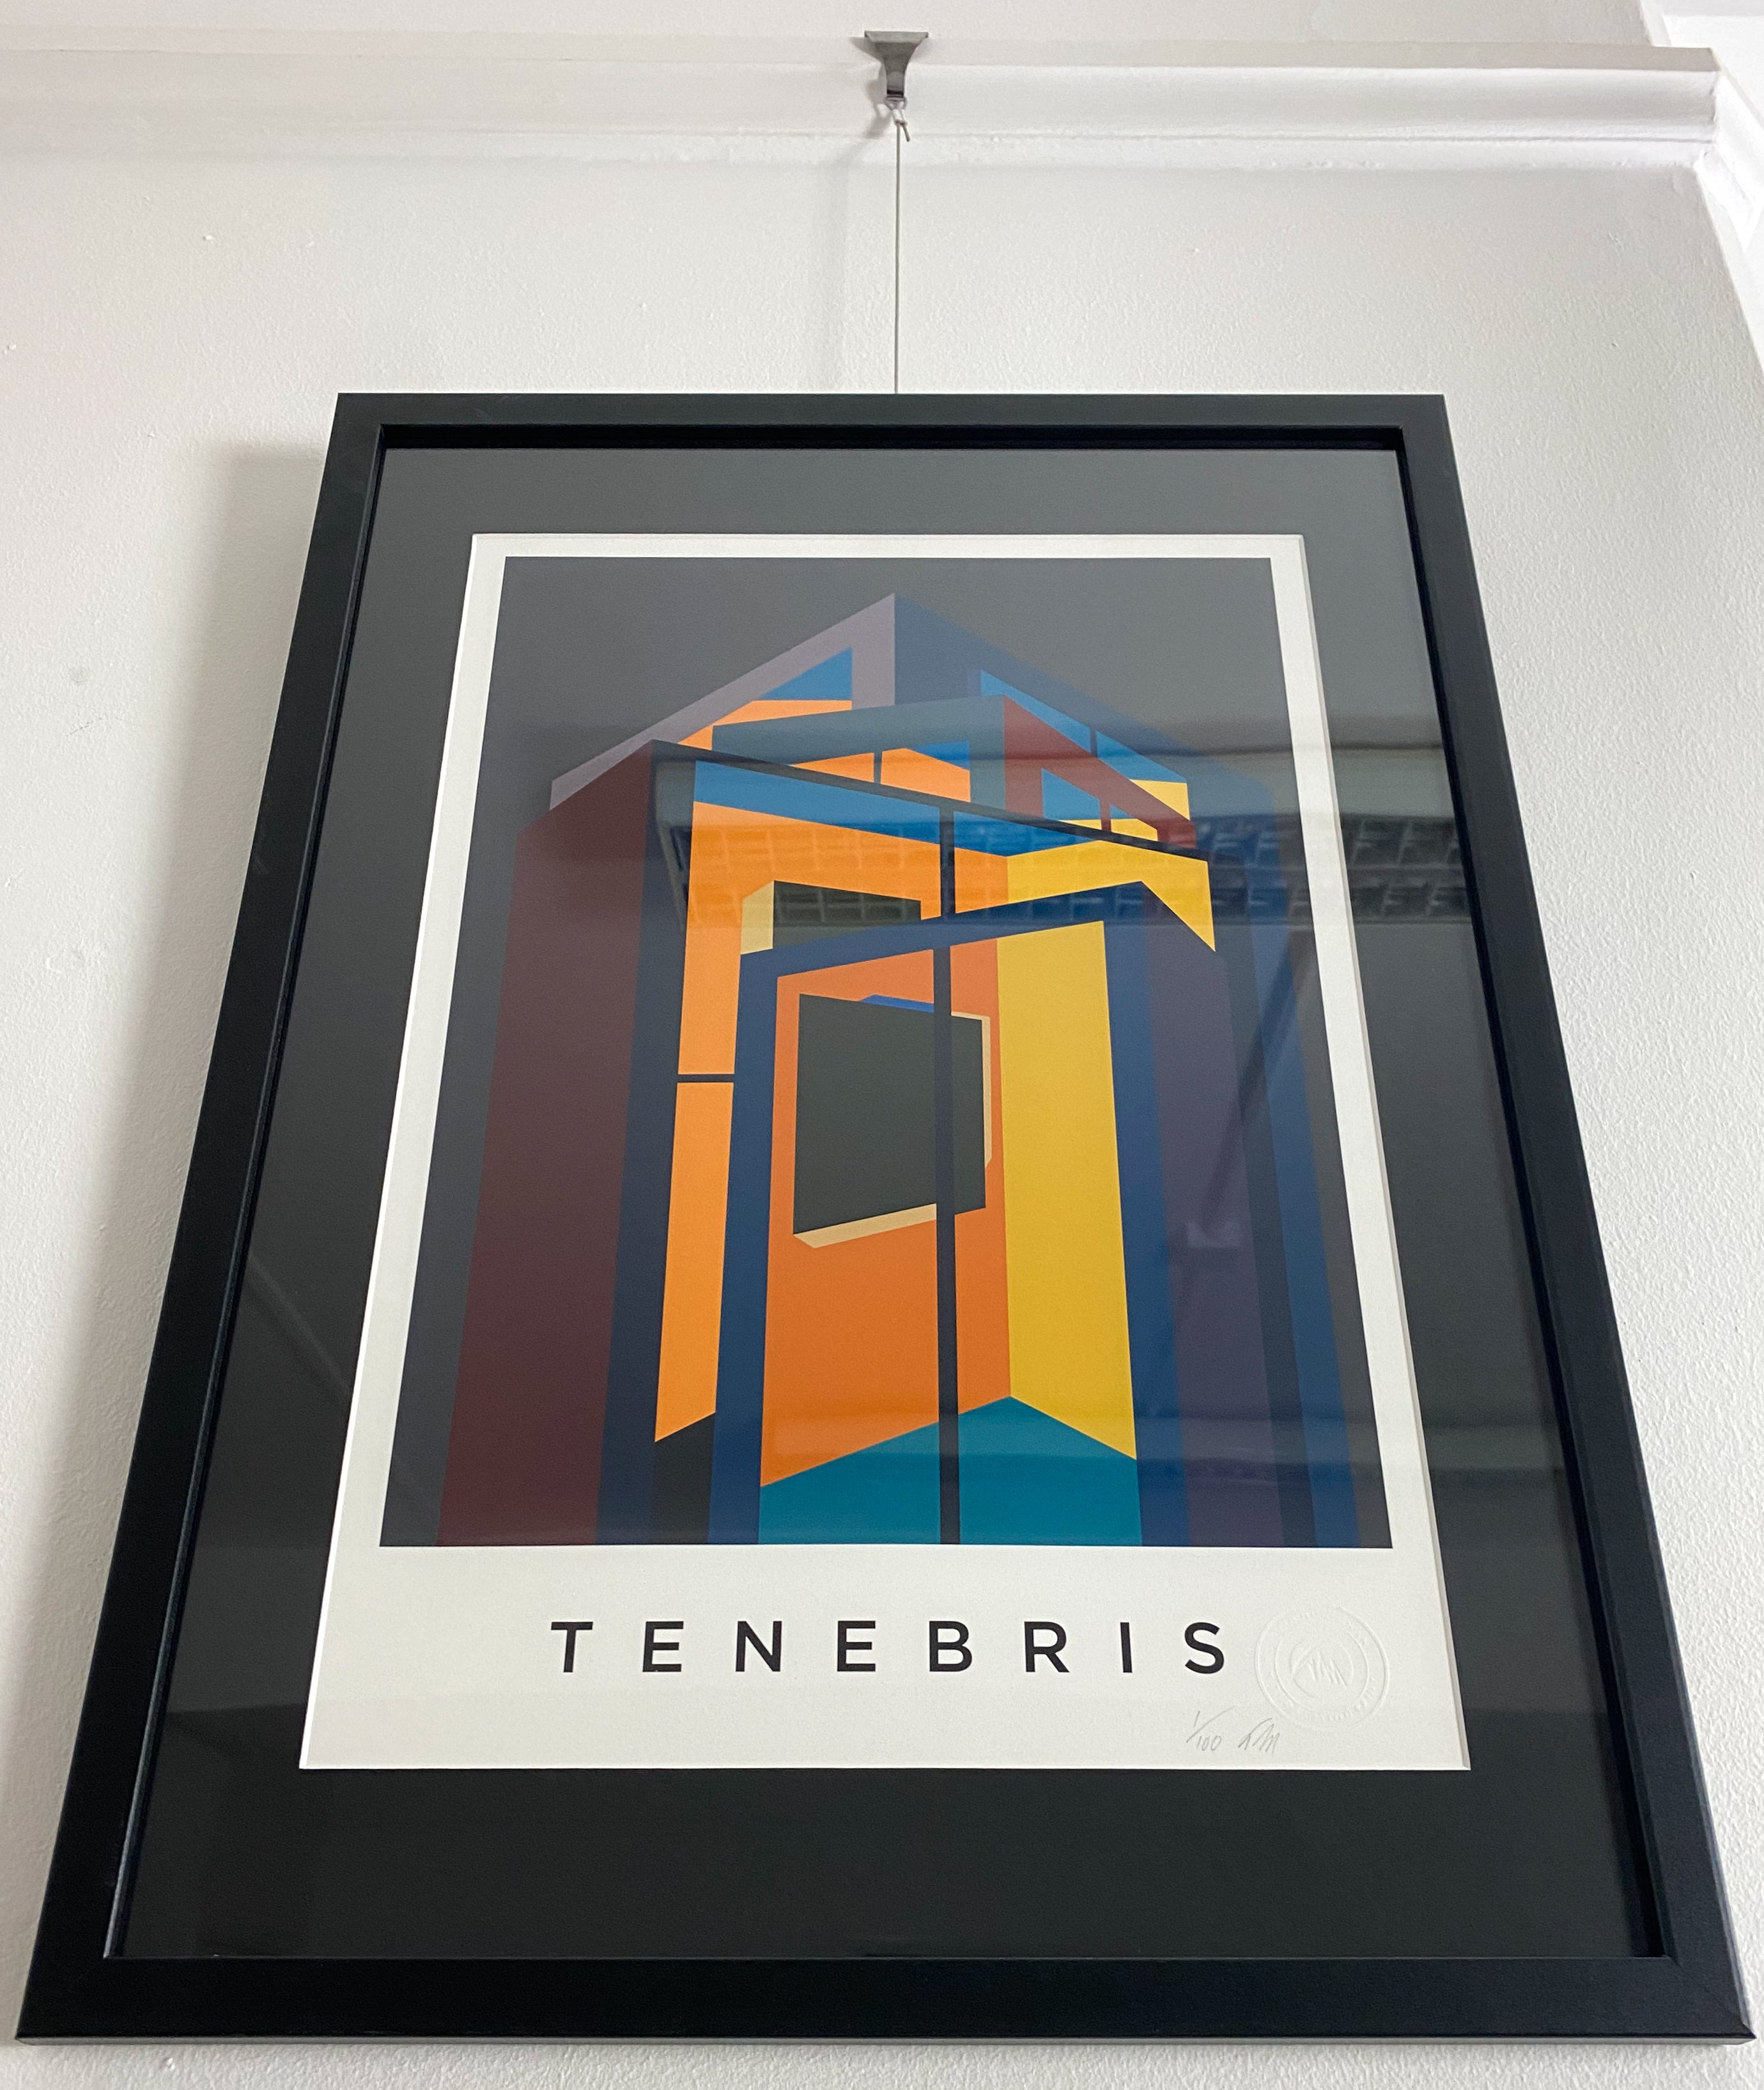 TENEBRIS.  Limited Edition Giclee Print